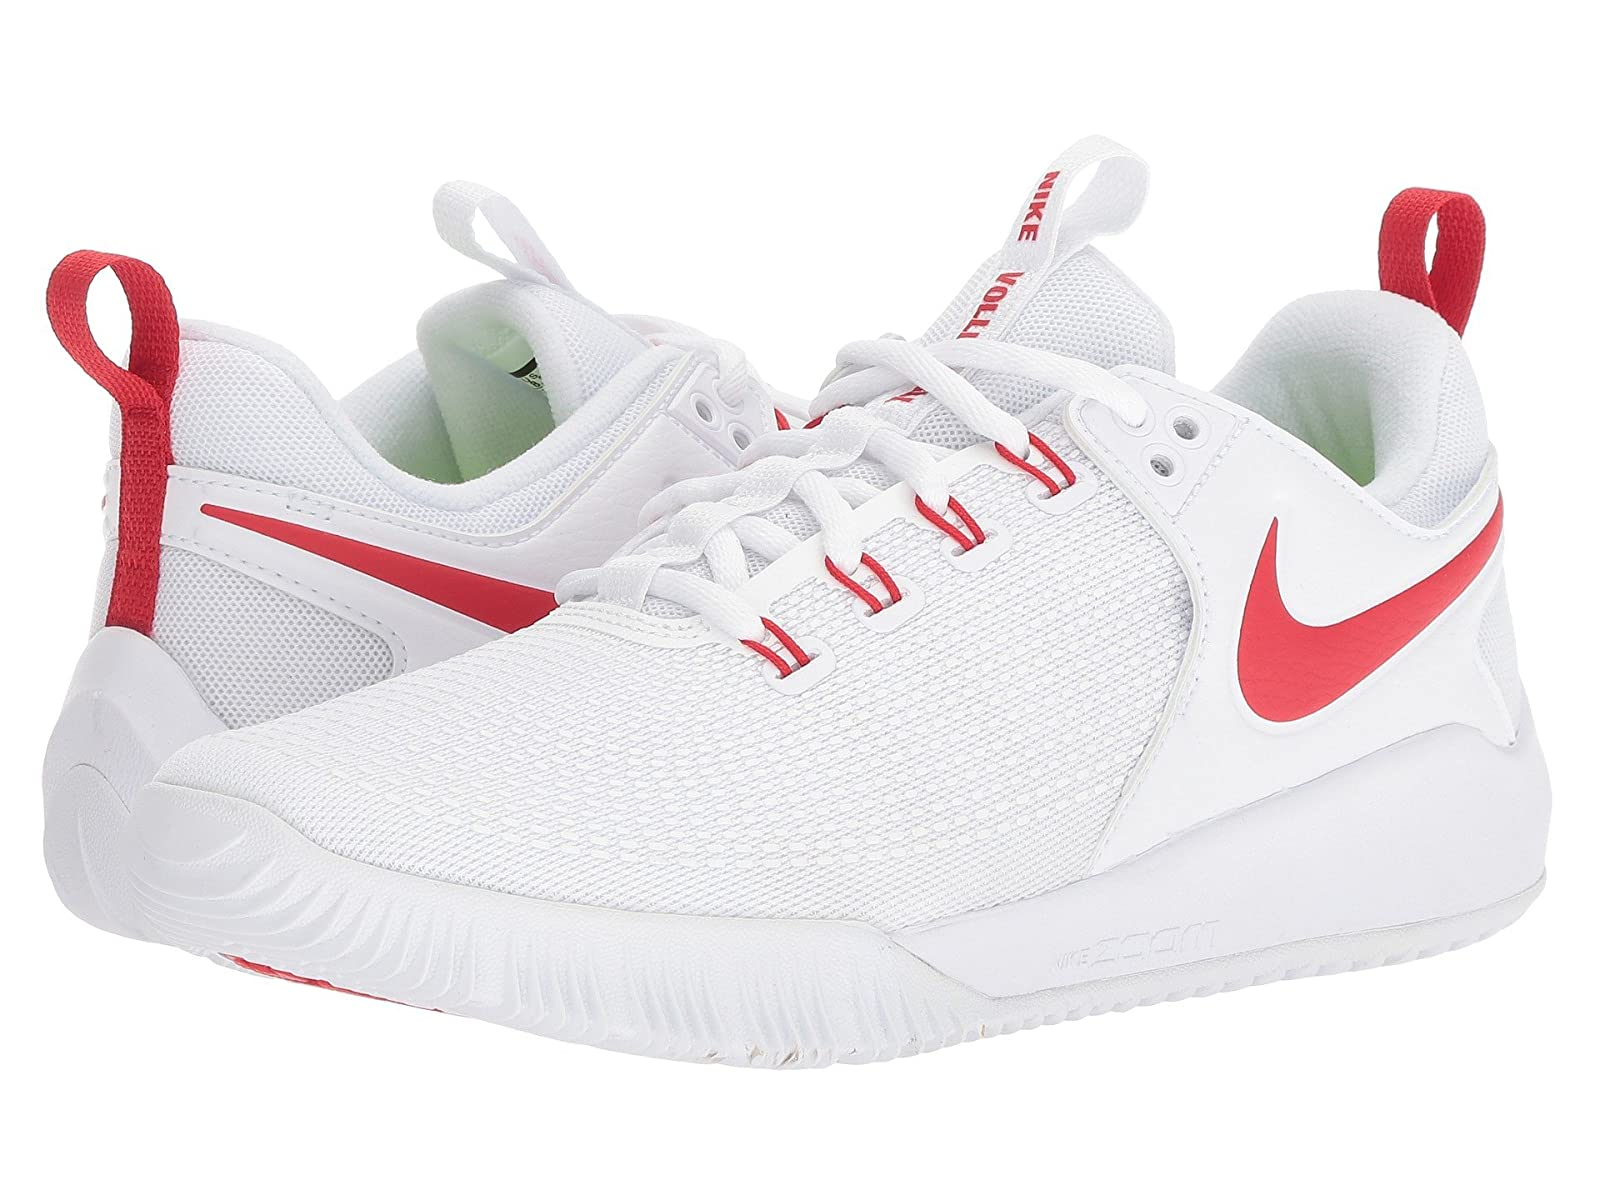 Nike Zoom HyperAce 2Atmospheric grades have affordable shoes